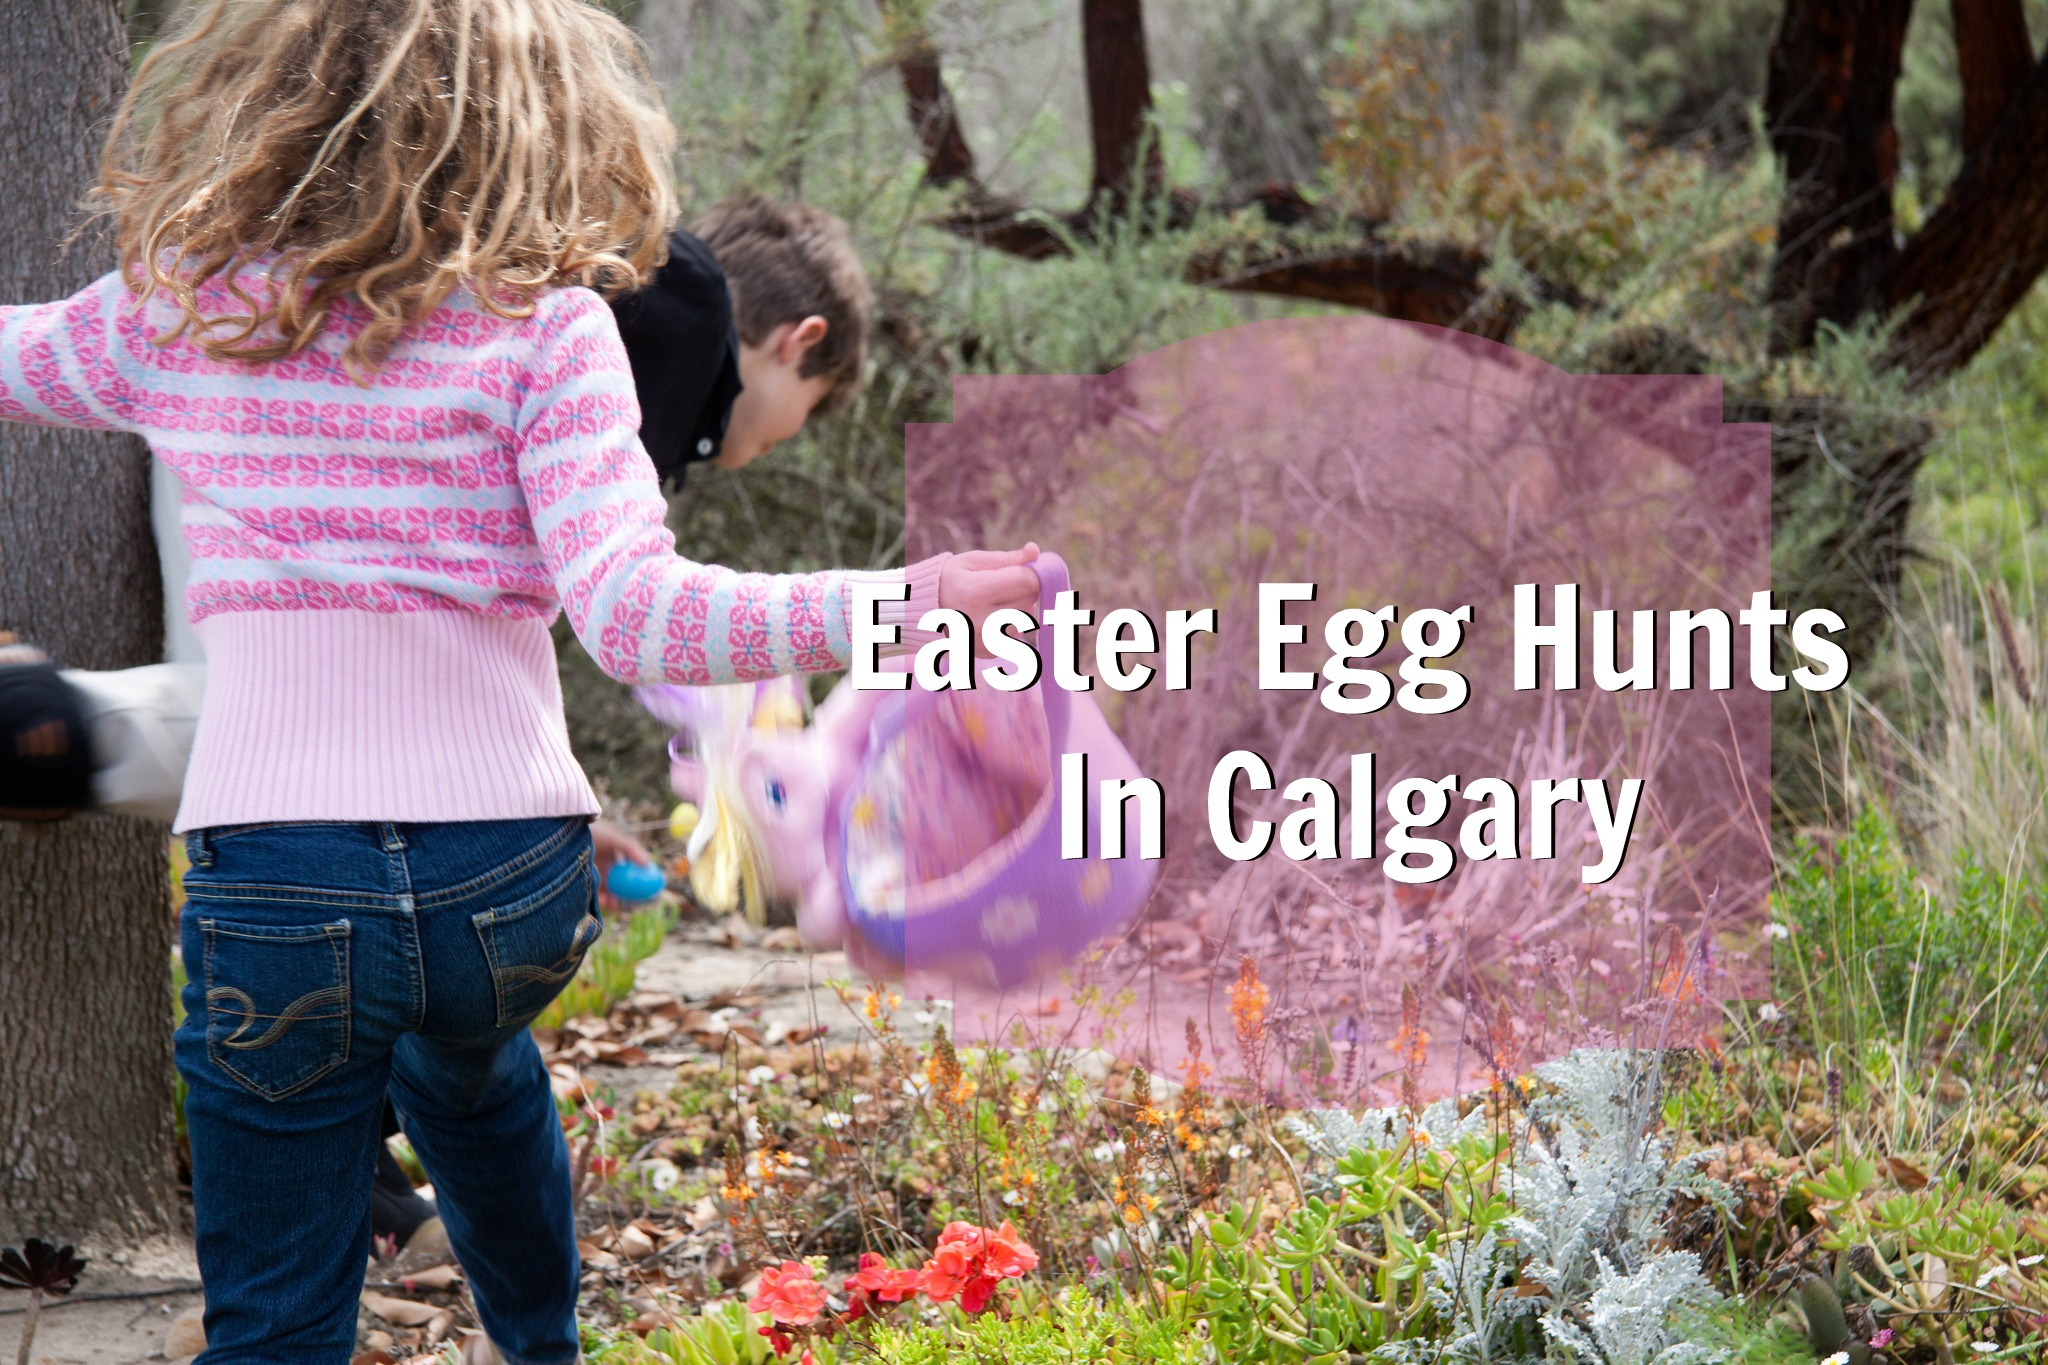 List Of Easter Egg Hunts In Calgary 2015